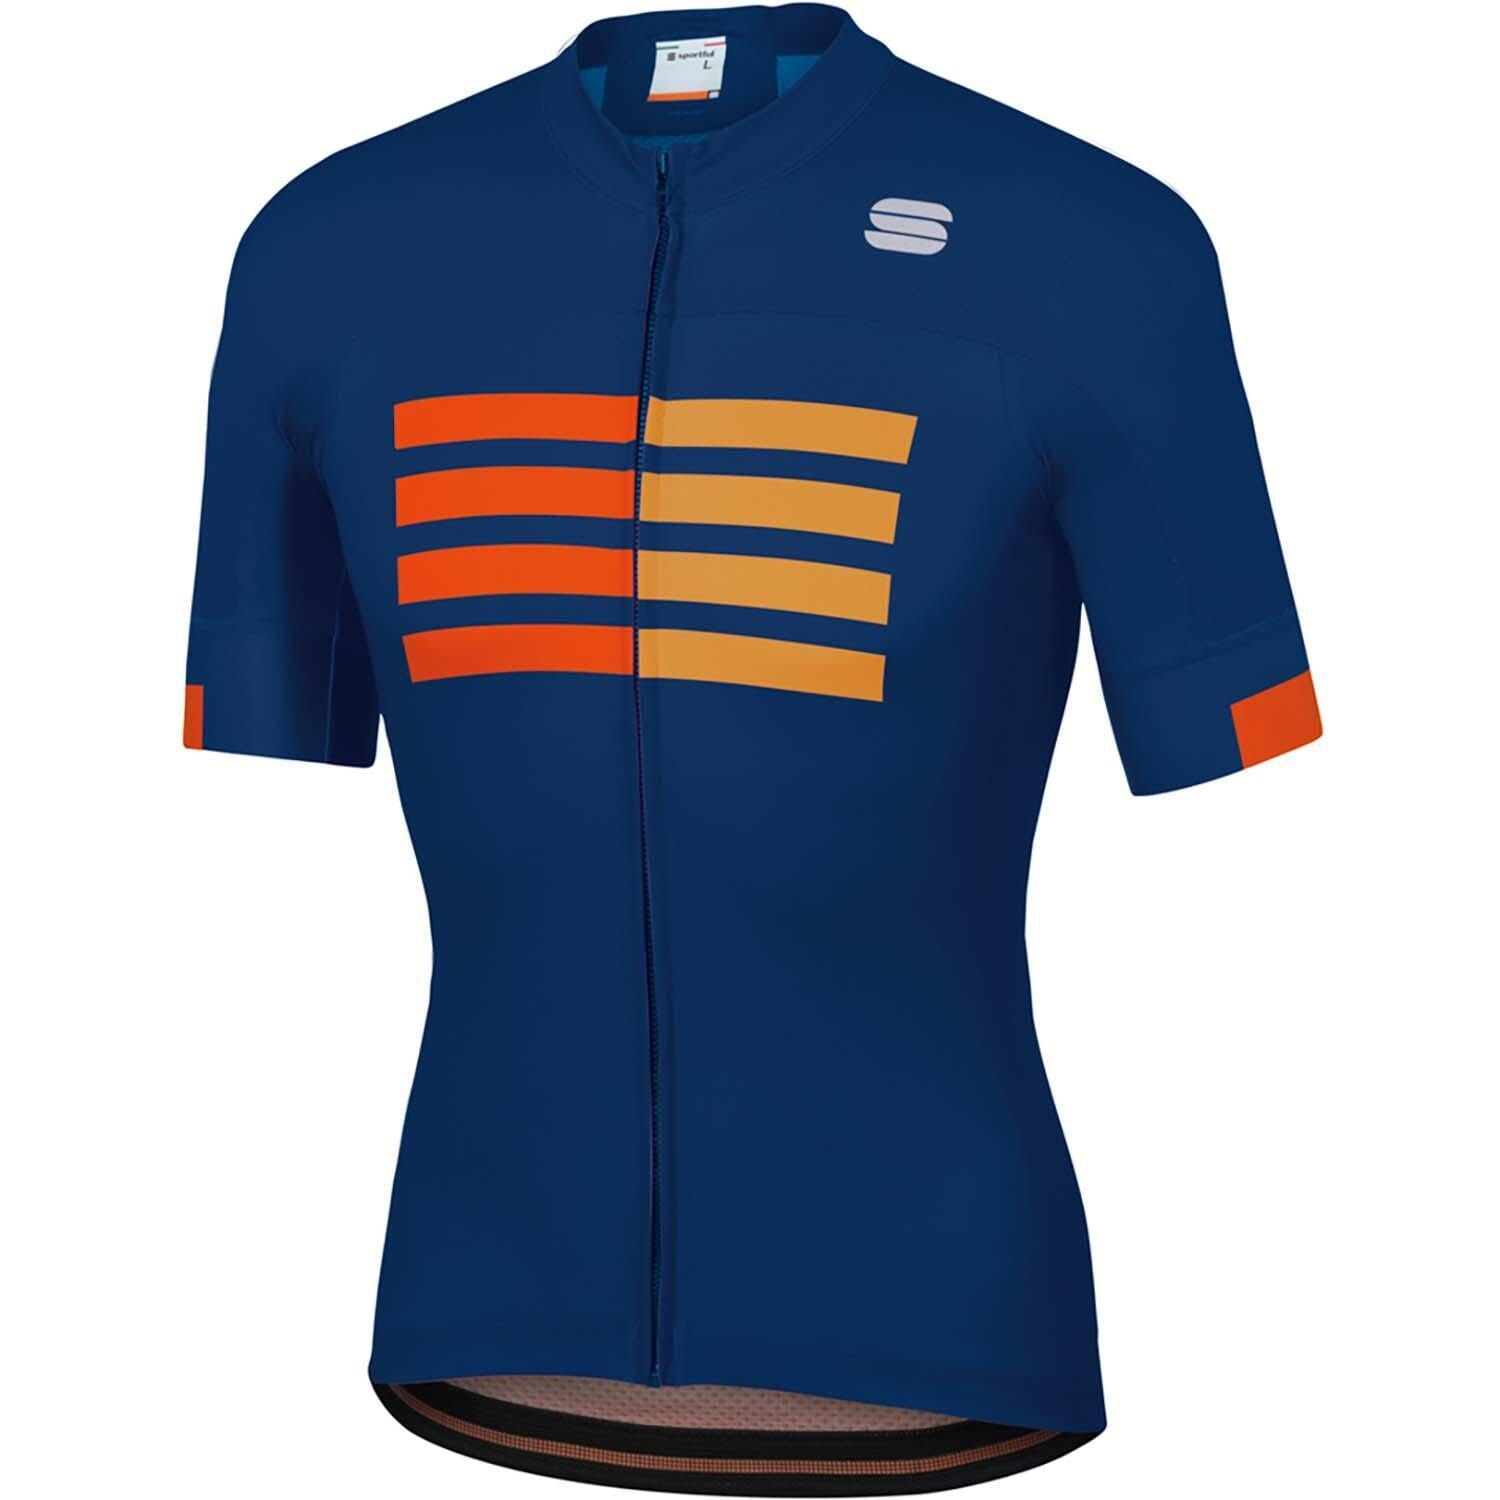 Sportful-Sportful Wire Jersey-Blue Twilight/Fire Red/Gold-S-SF200084332-saddleback-elite-performance-cycling